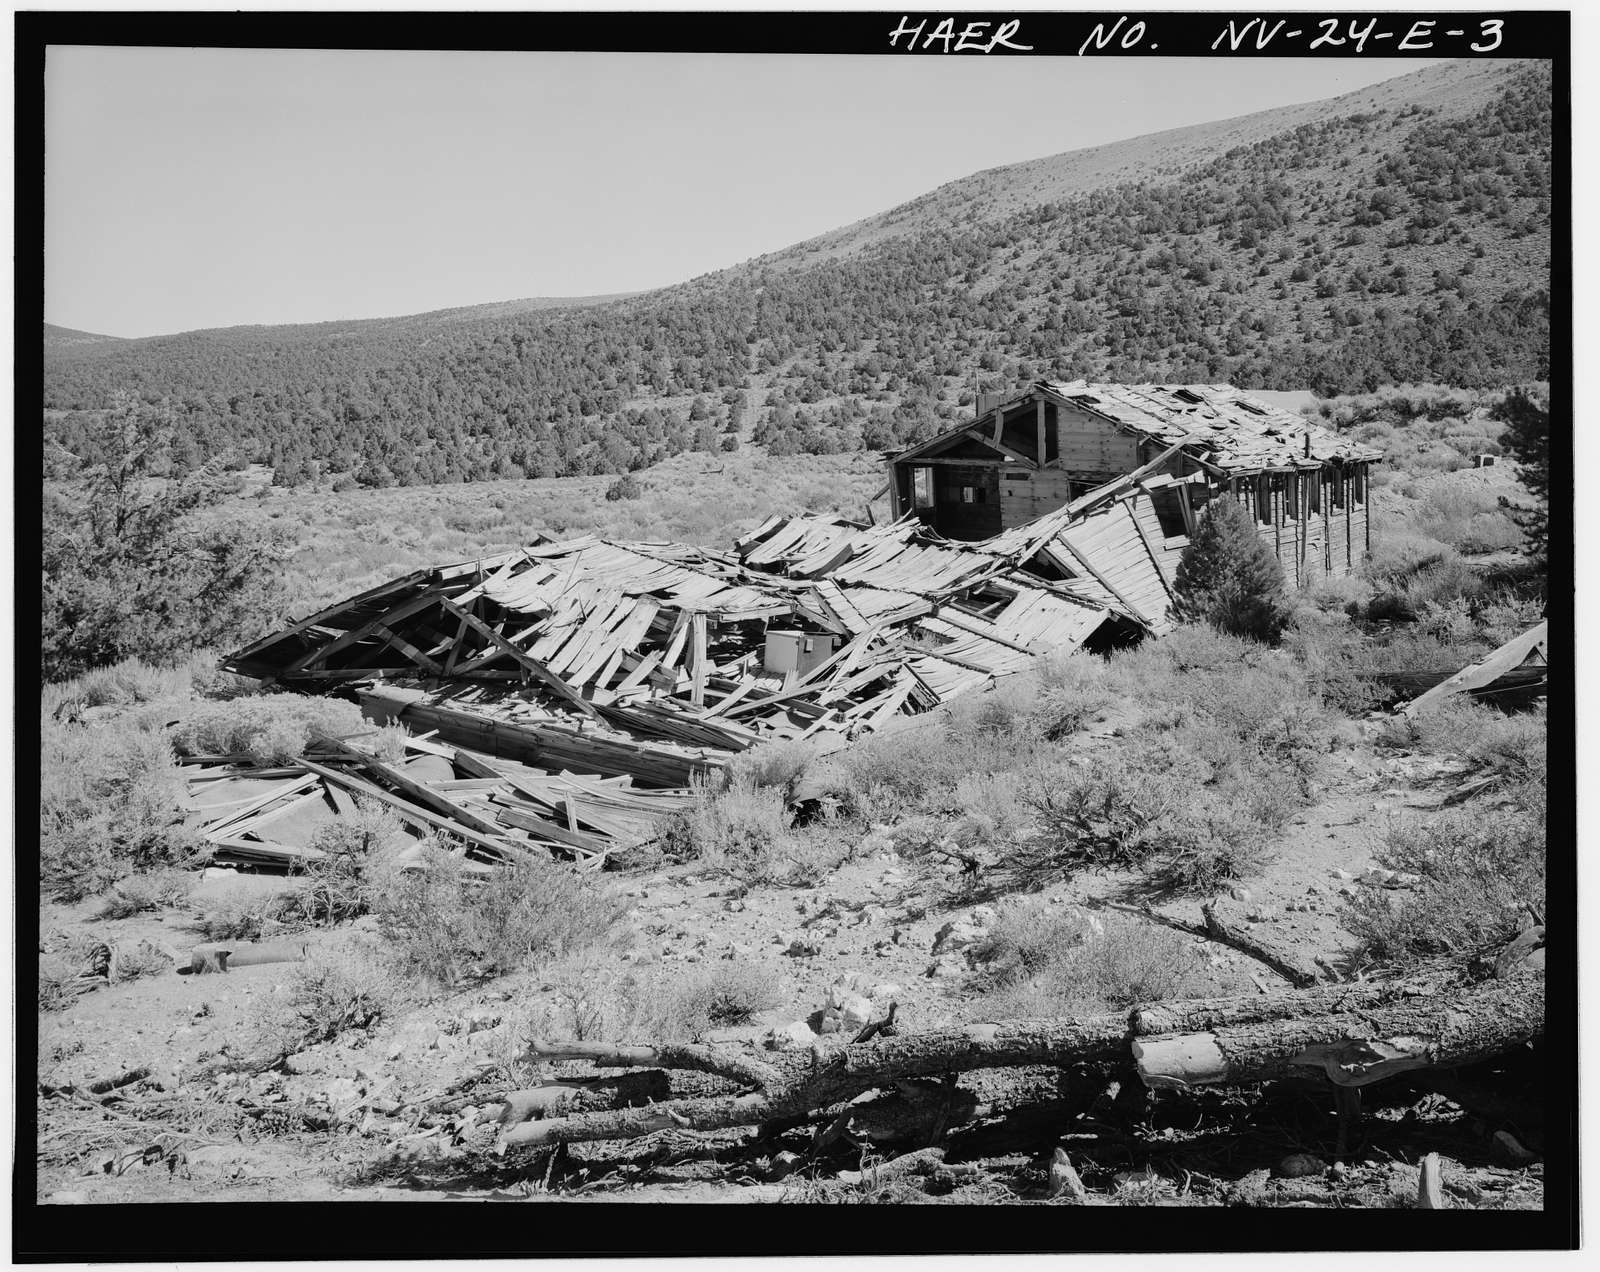 Juniata Mill Complex, Mine Camp Building, 22.5 miles Southwest of Hawthorne, between Aurora Crater & Aurora Peak, Hawthorne, Mineral County, NV